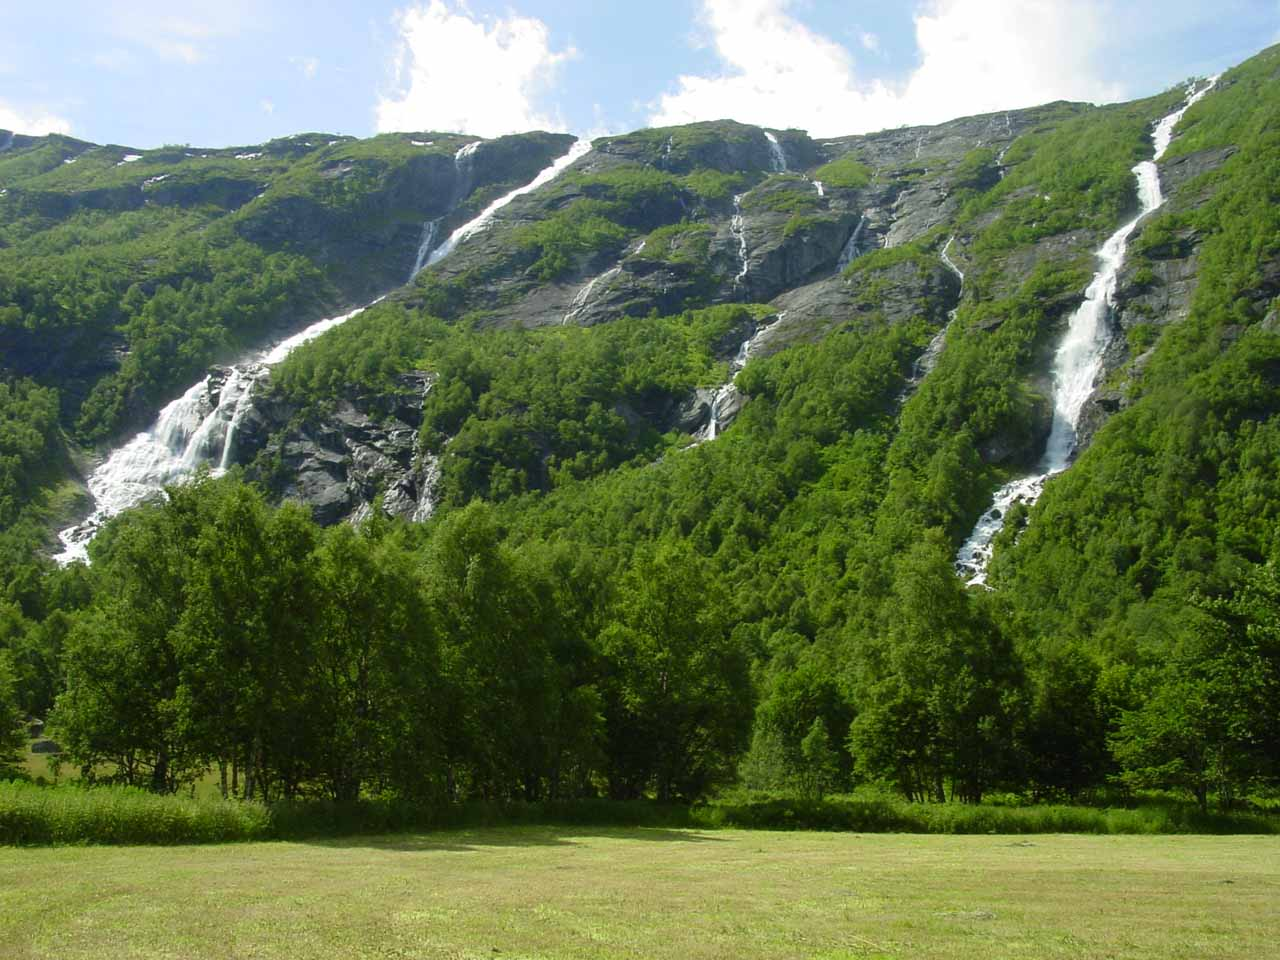 This conspicuous pair of waterfalls were on the streams Tverrgrova (right) and Høvla (left) so I guess we could call them Tverrgrovafossen and Høvlafossen, respectively